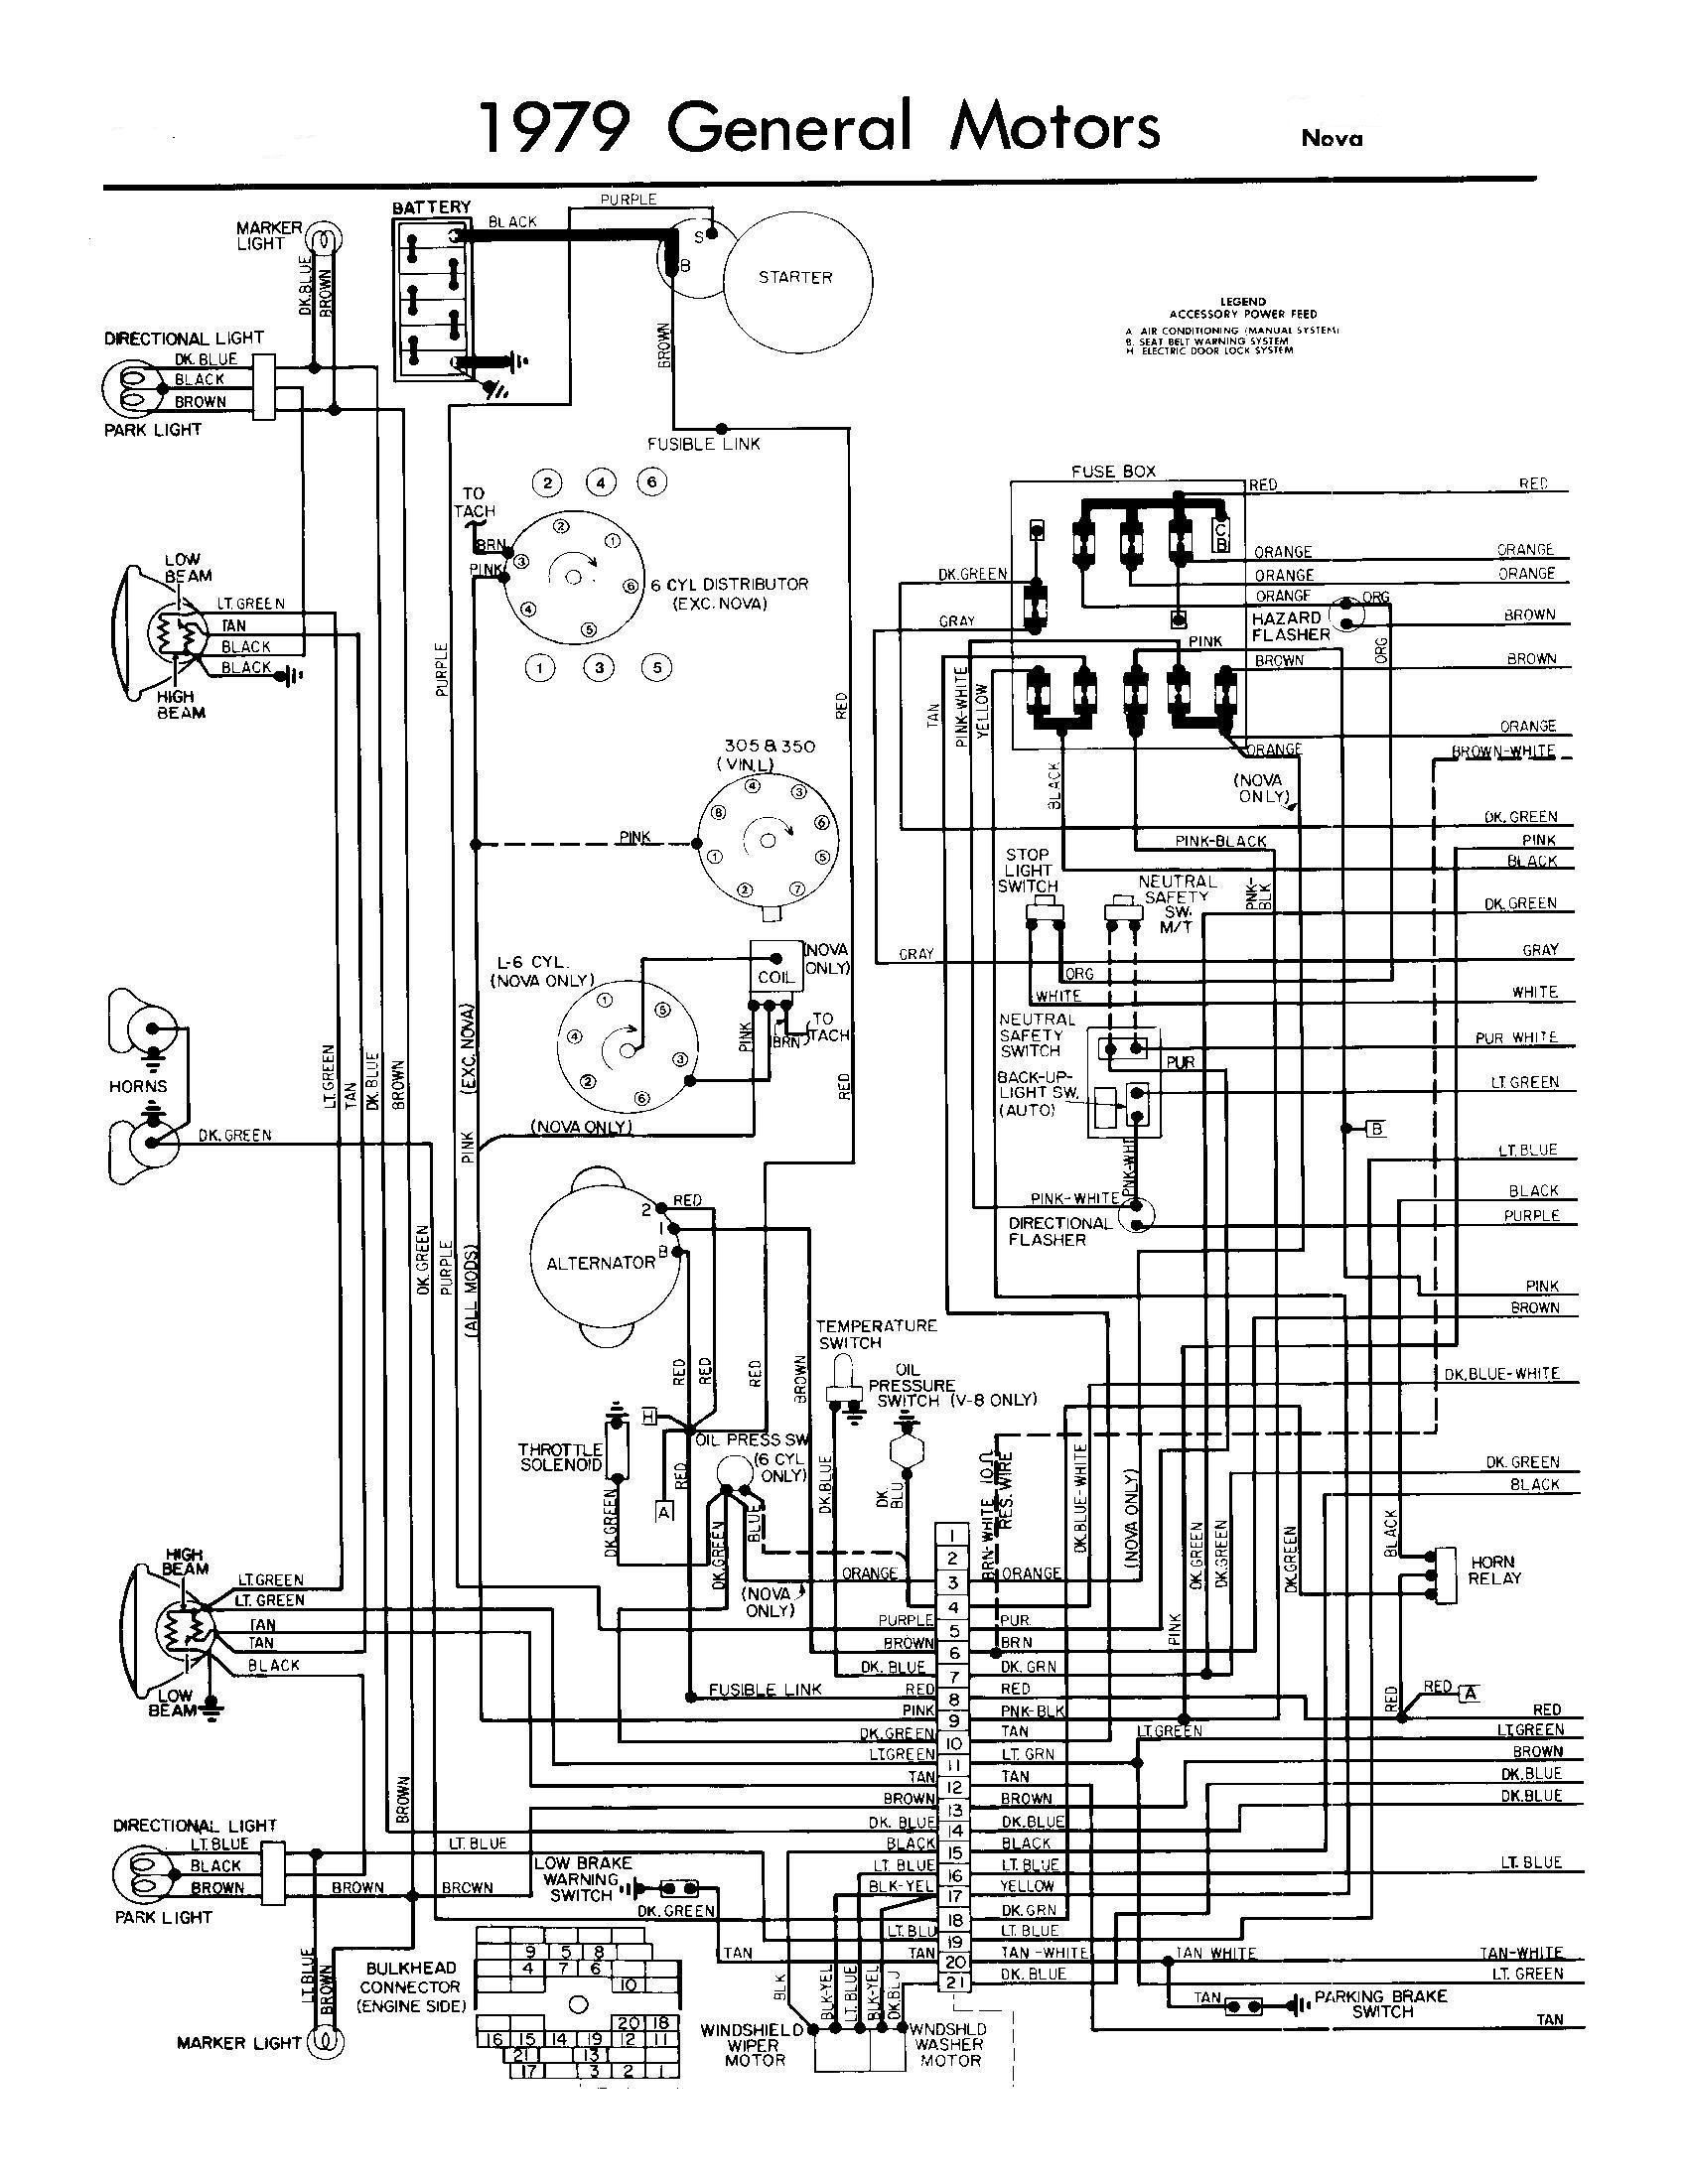 1981 datsun pickup wiring diagram automotive wiring diagrams